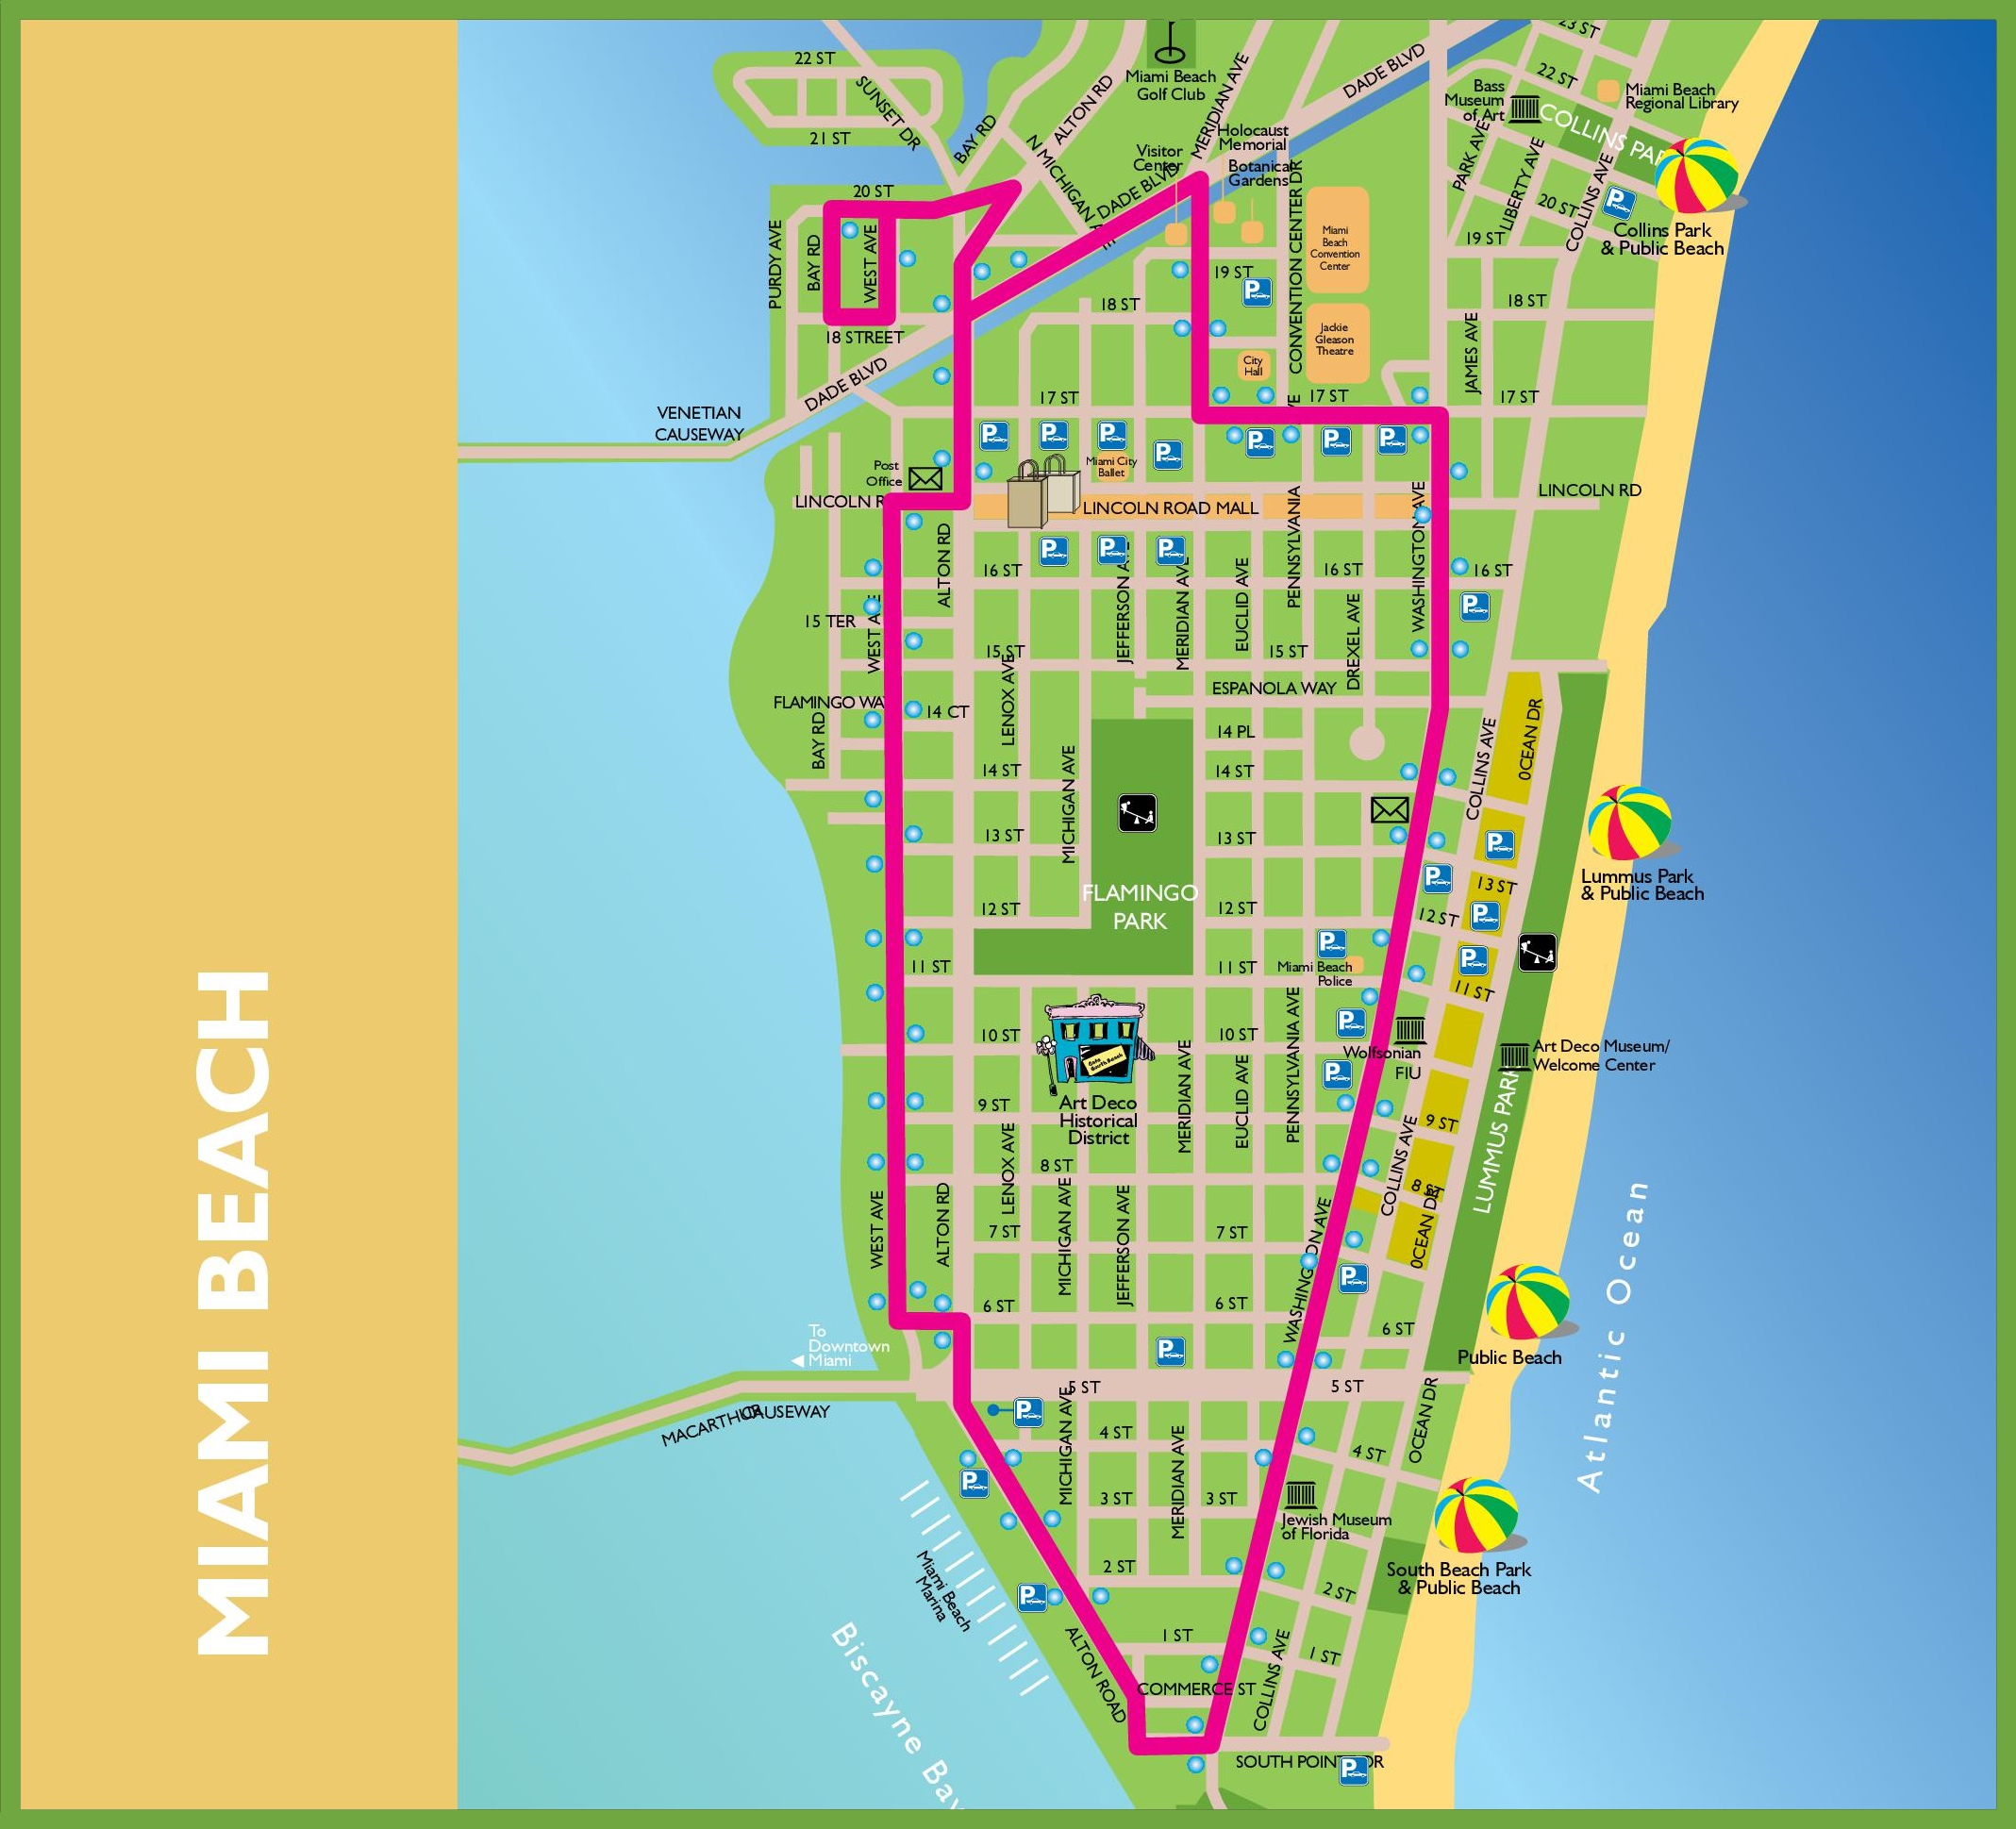 Miami Beach tourist map – Miami Beach Tourist Map